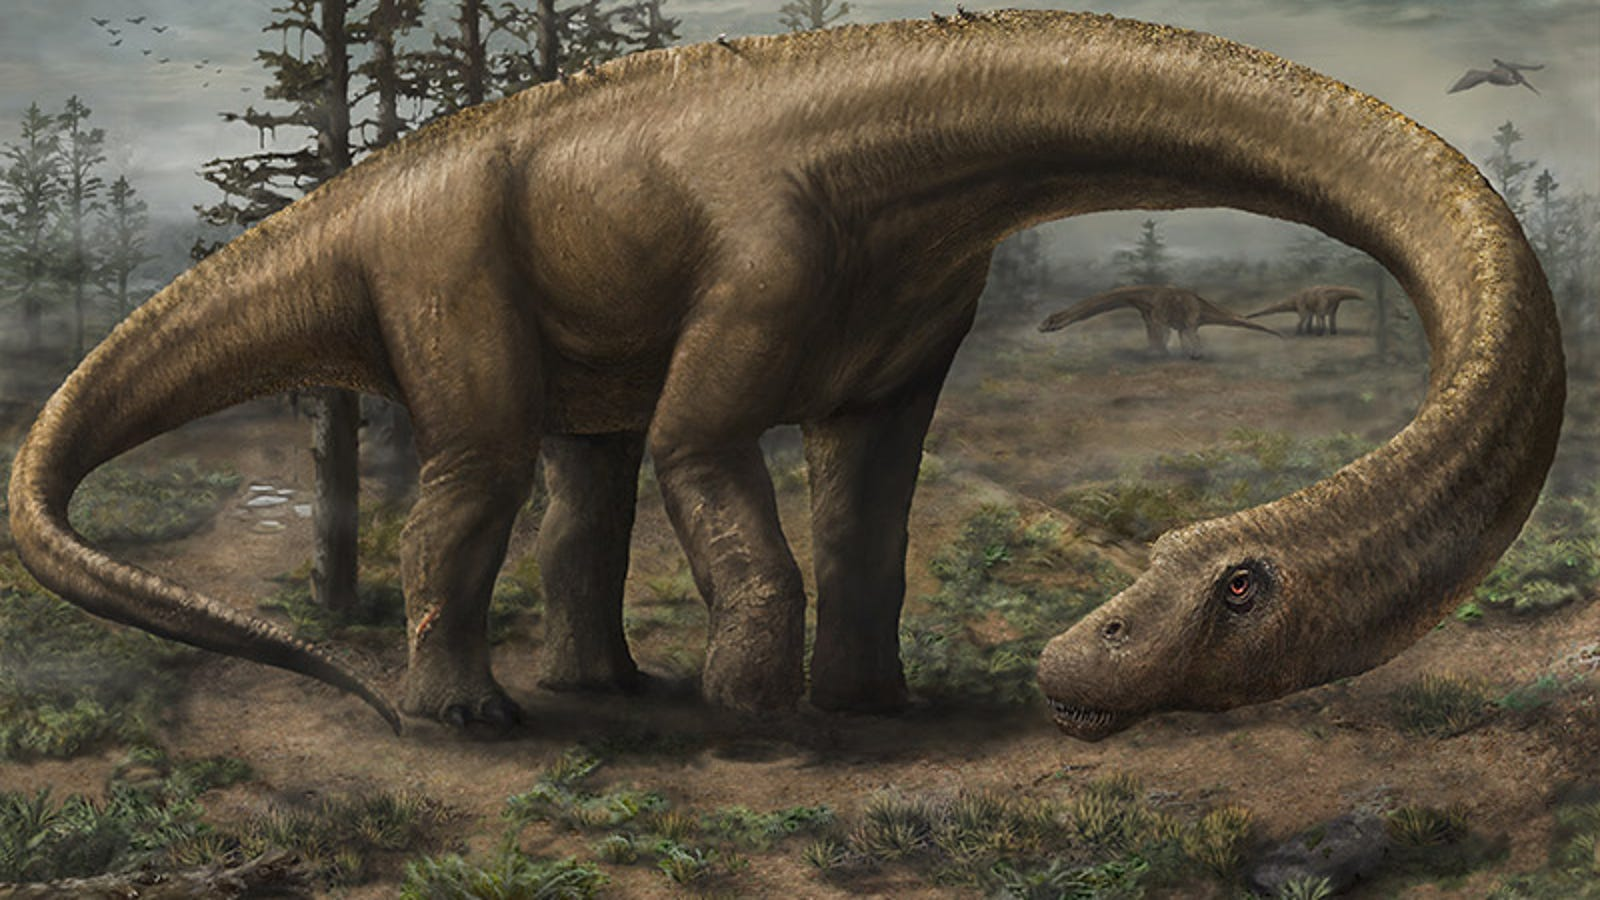 Dreadnoughtus, A Newly Discovered Supermassive Dinosaur, By The Numbers